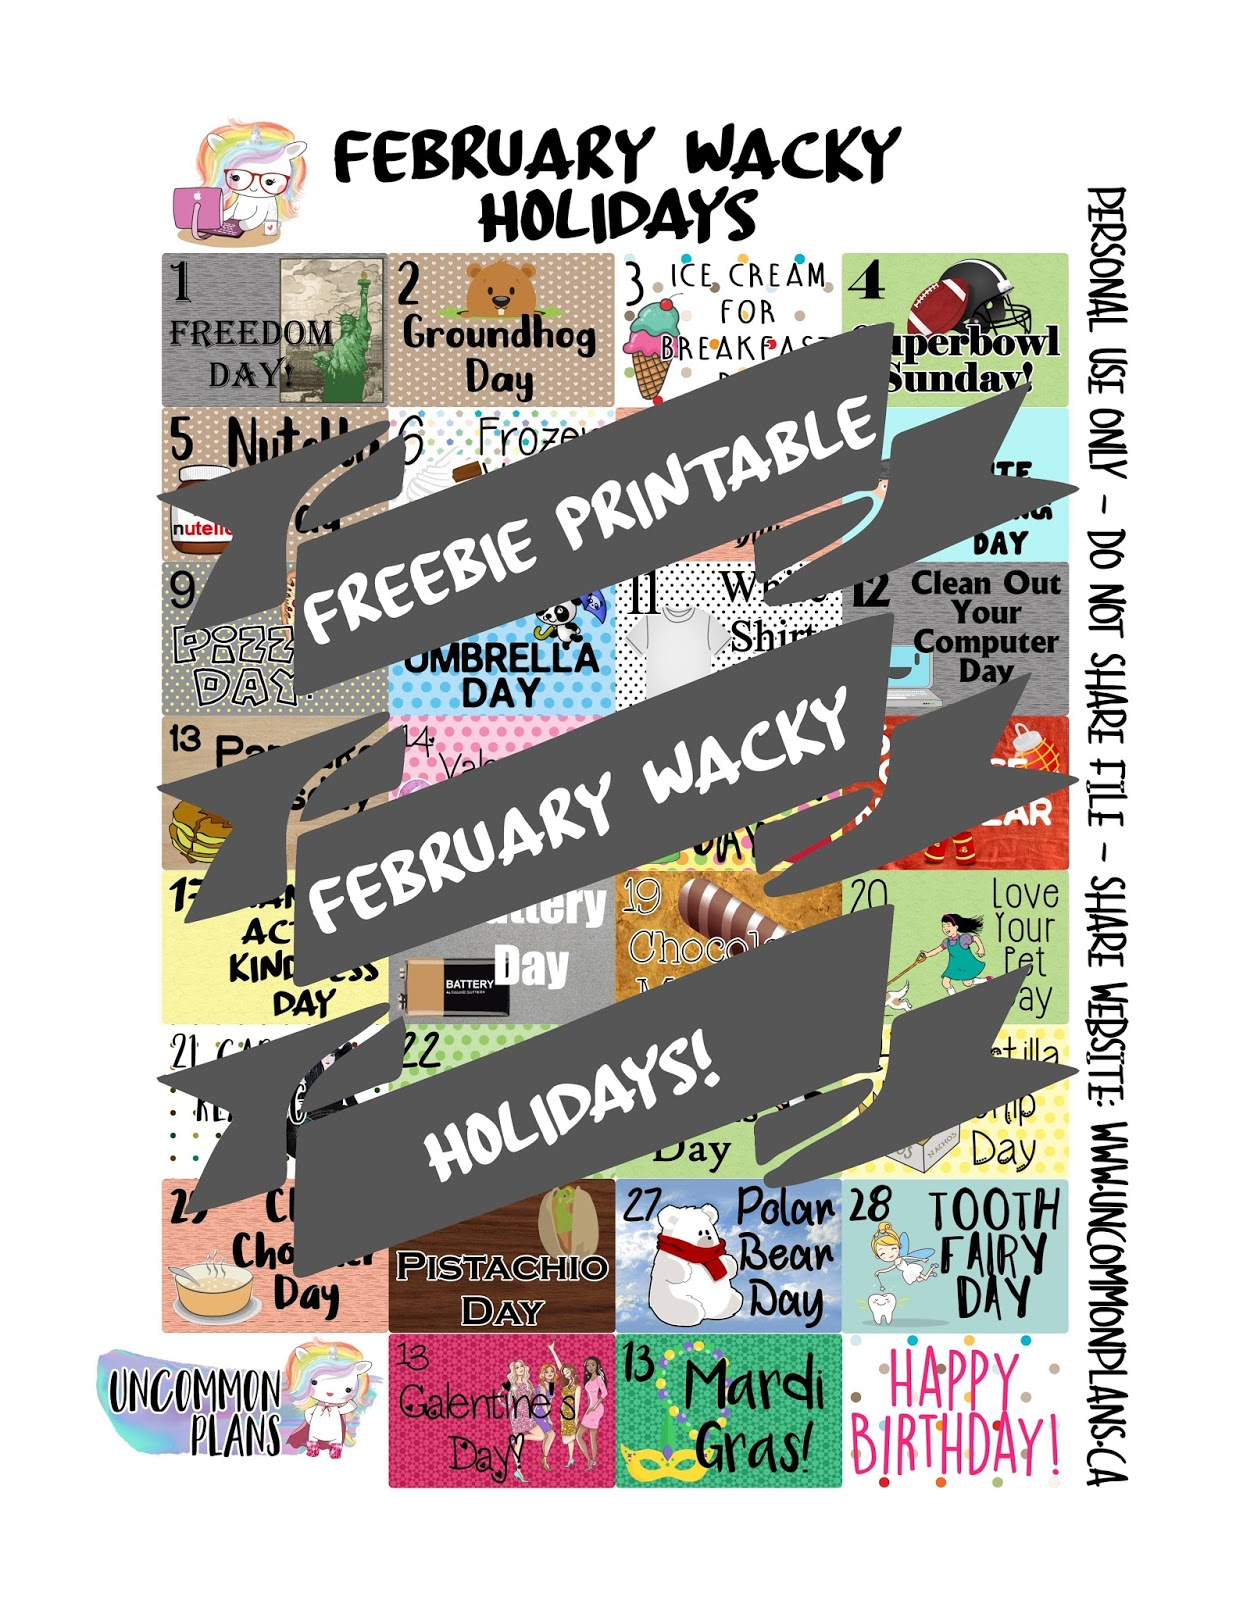 Uncommon Plans Freebie Printable Planner Stickers February Wacky Holidays